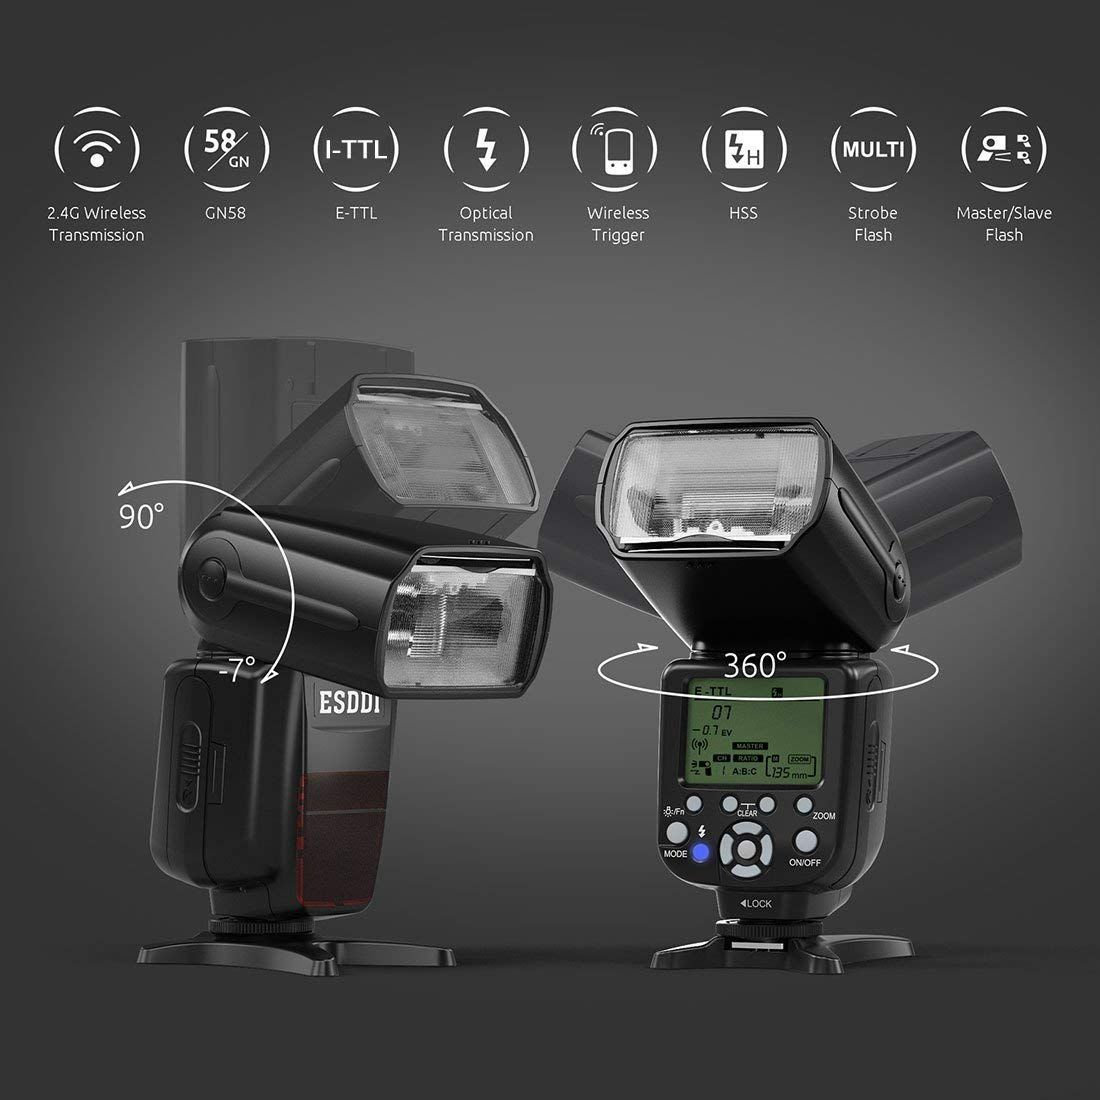 ESDDI Nikon Flash, 1/8000 HSS Wireless Flash Speedlite